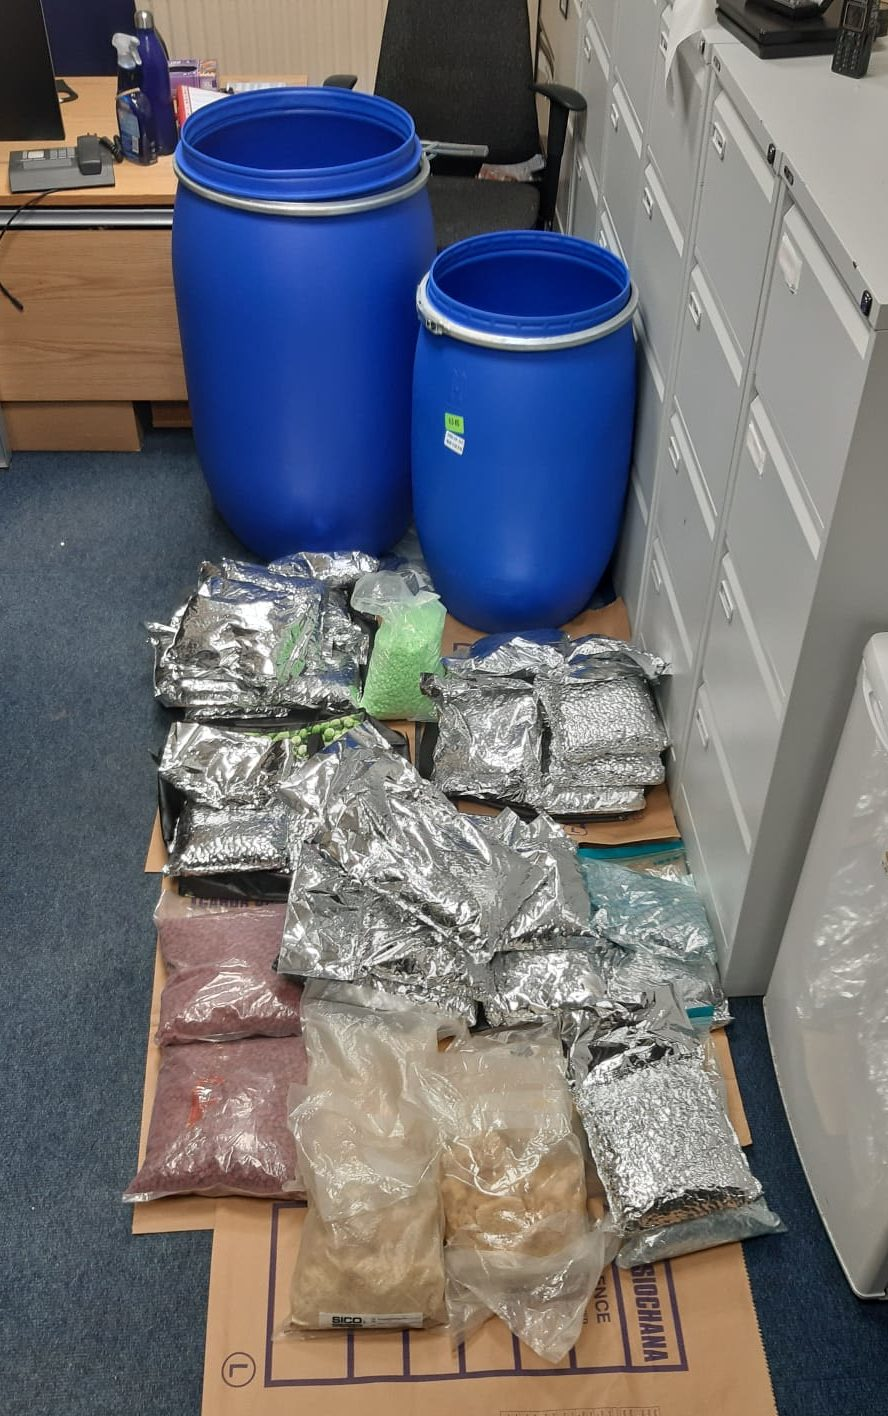 Image of the drugs discovered in Dublin